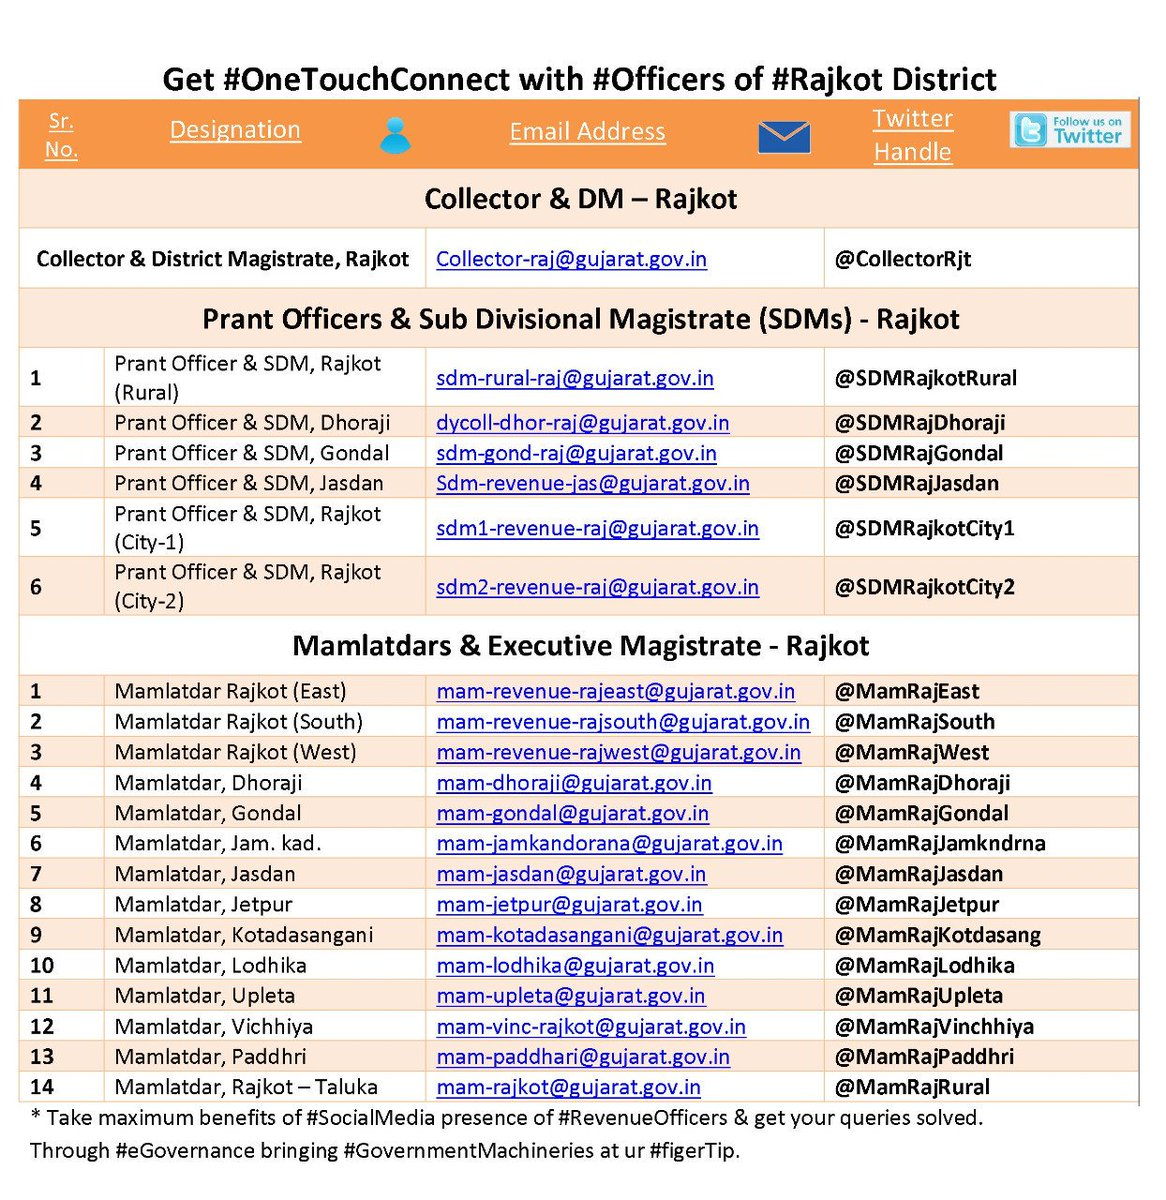 Get #OneTouchConnect w/ #DistrictAdministration officers of #Rajkot district. Folks can take max benefits of #socialmedia presence of revenueOfficers & r open for d suggestions n queries resolutions.  Through eGovernance trying bringing #GovernmentMachineries at ur #FingerTip.